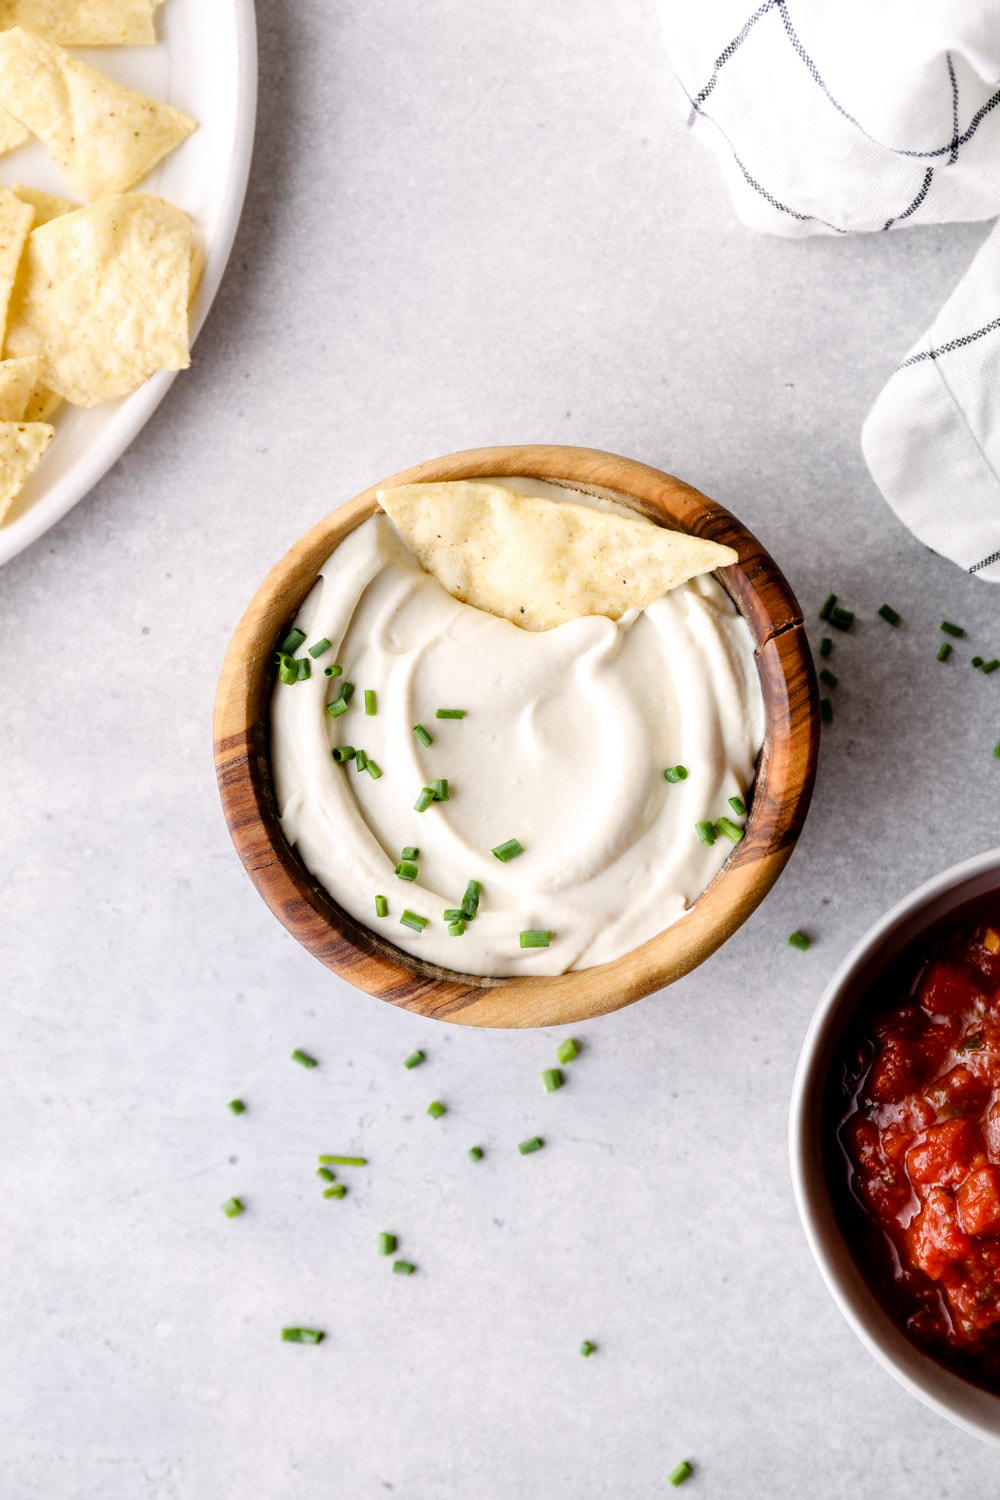 Cashew Sour Cream in a wooden bowl with chips.